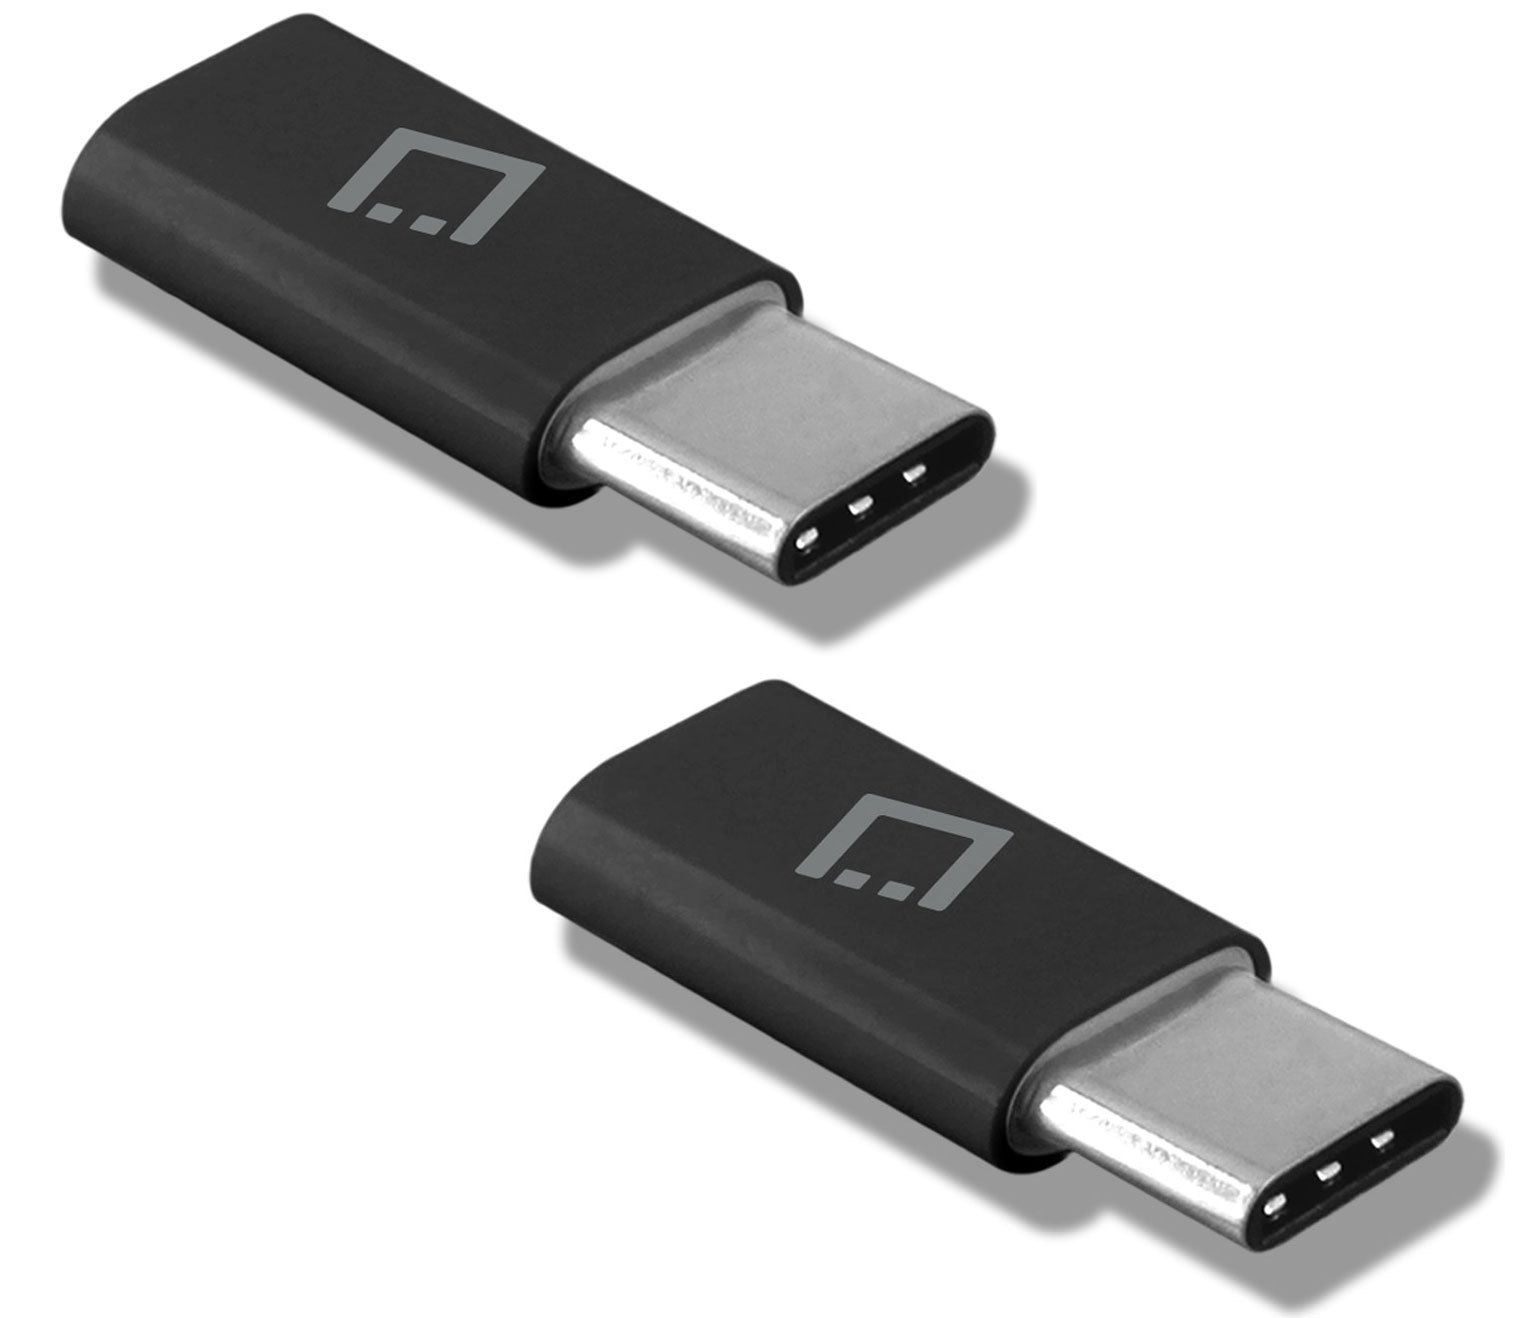 LG Stylo 4 MicroUSB to USB Type-C Adapter Black Pack Of 2